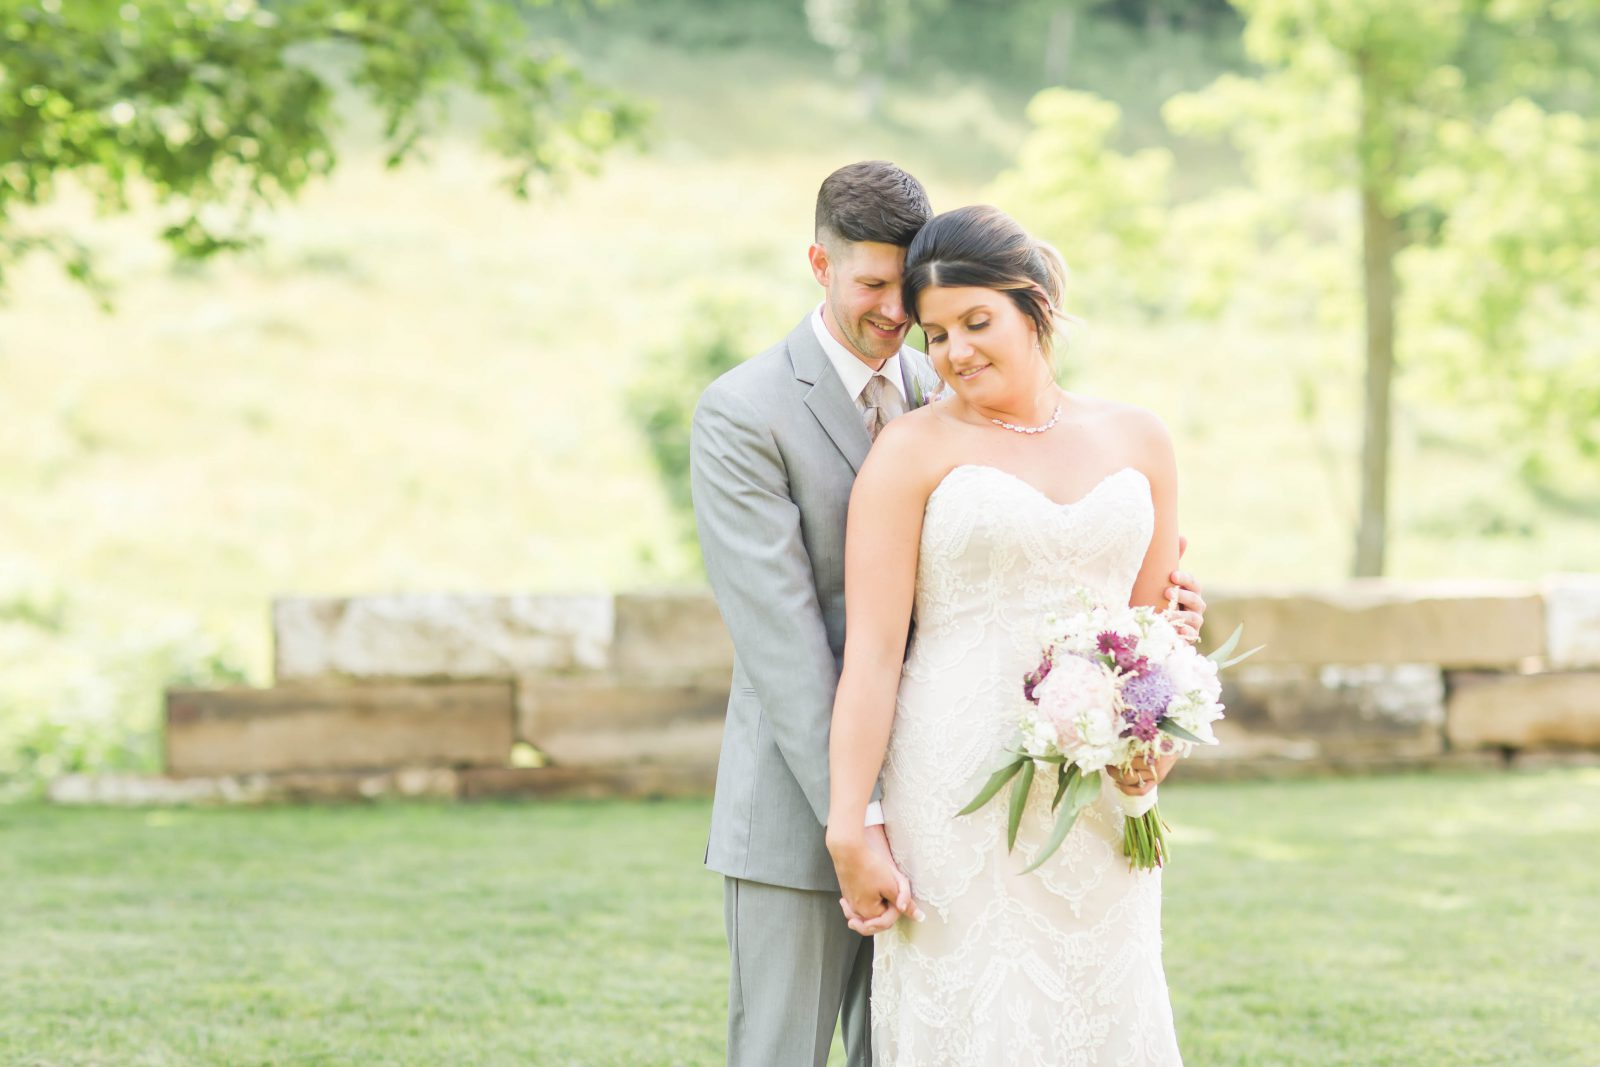 rivercrest-farm-summer-wedding-loren-jackson-photography-46